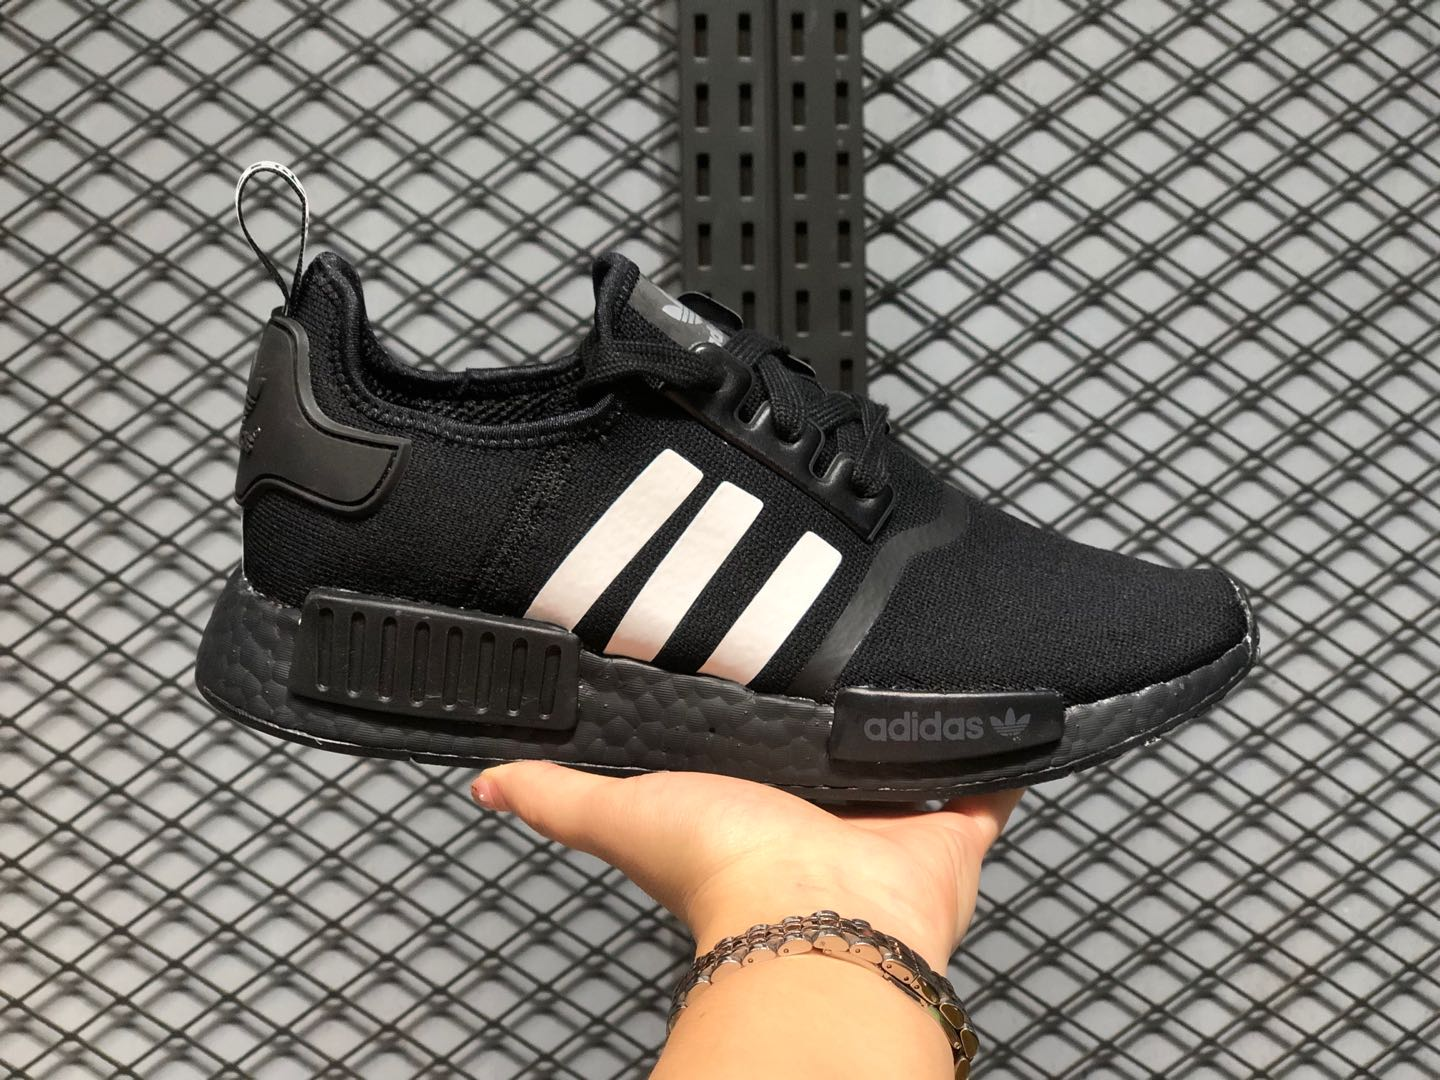 Hot Selling Adidas NMD R1 Core Black/Cloud White Shoes FV8728 ...